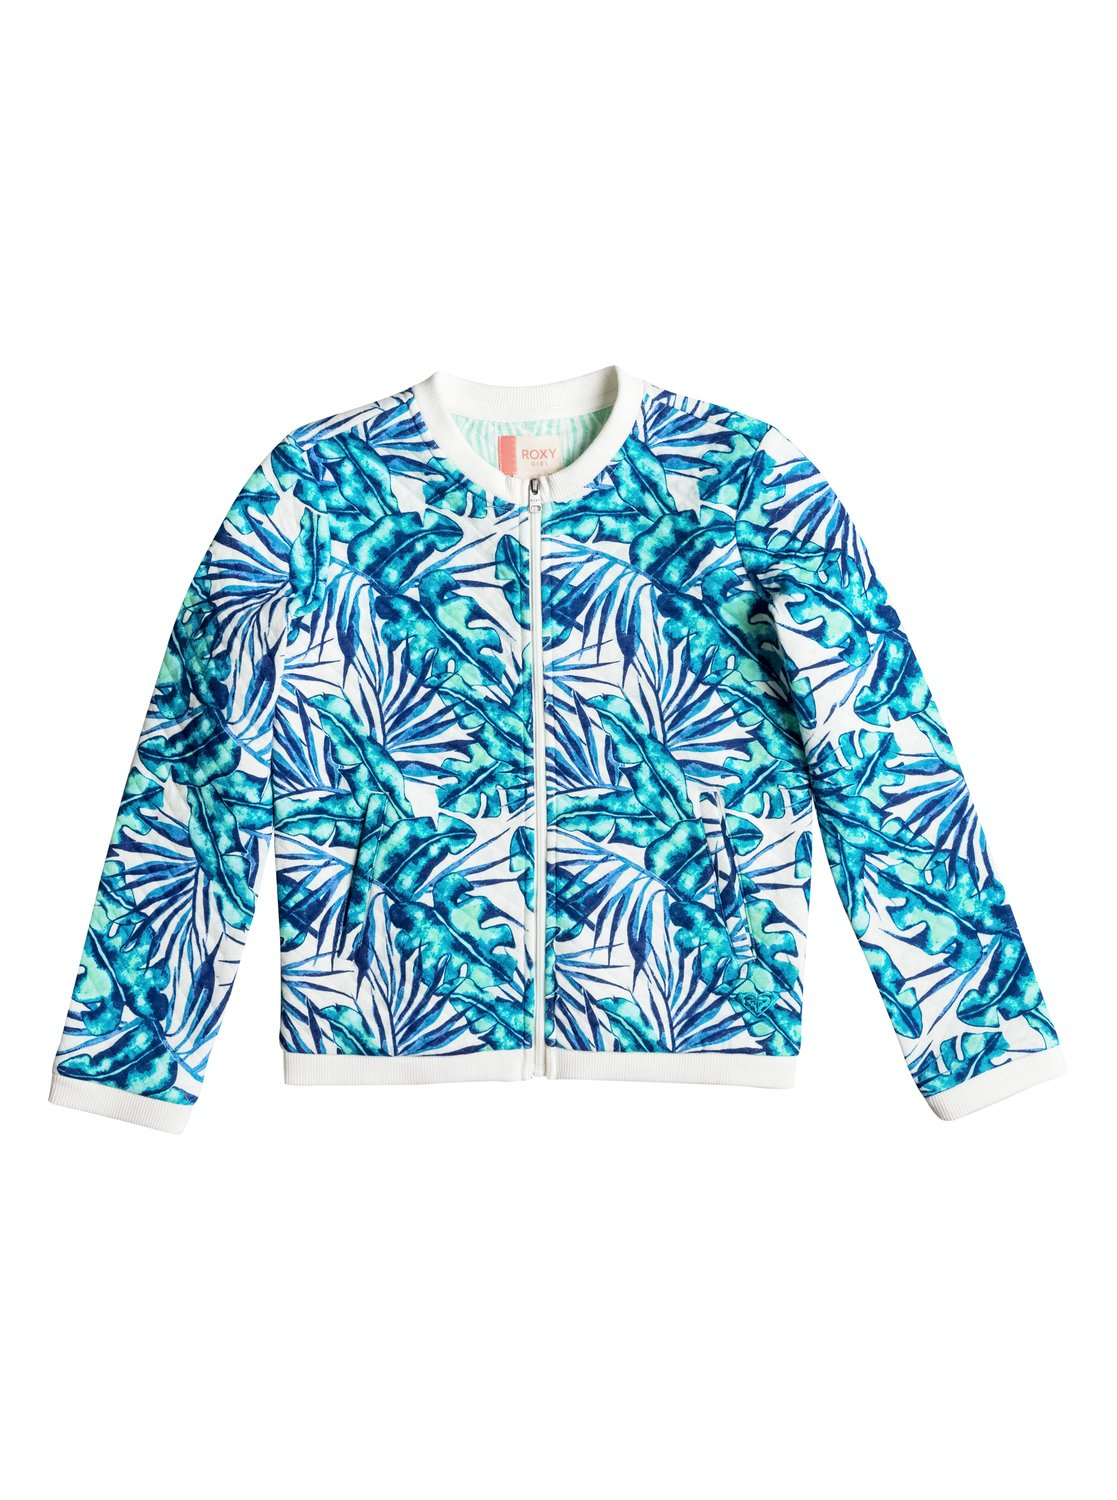 Southern Sun - Summer Jacket<br>